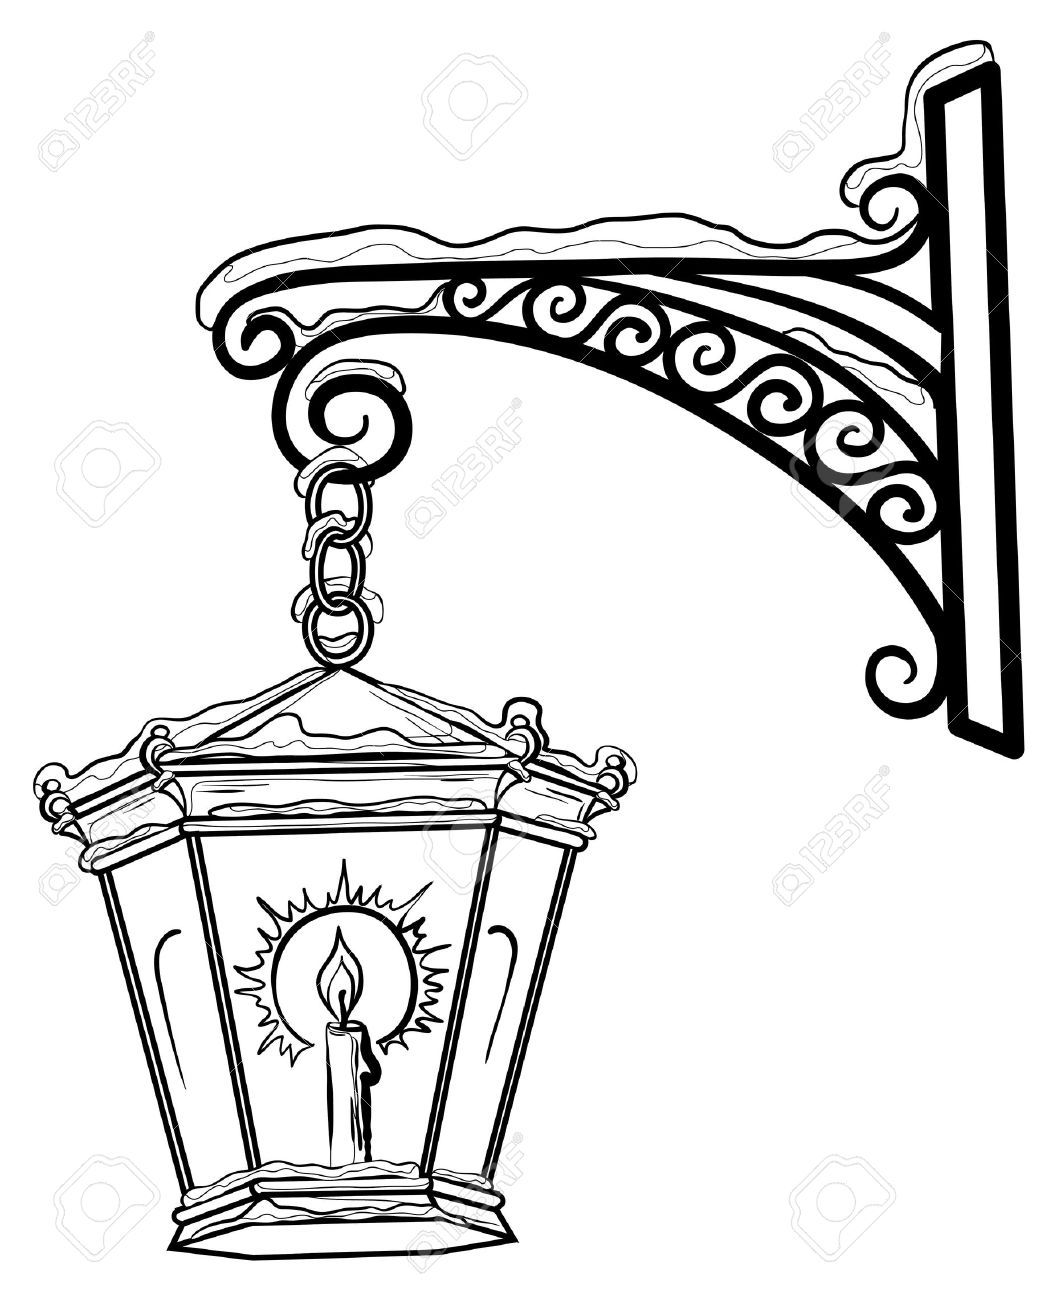 Drawing Lines In Dreamweaver : Street lamp stock illustrations cliparts and royalty free